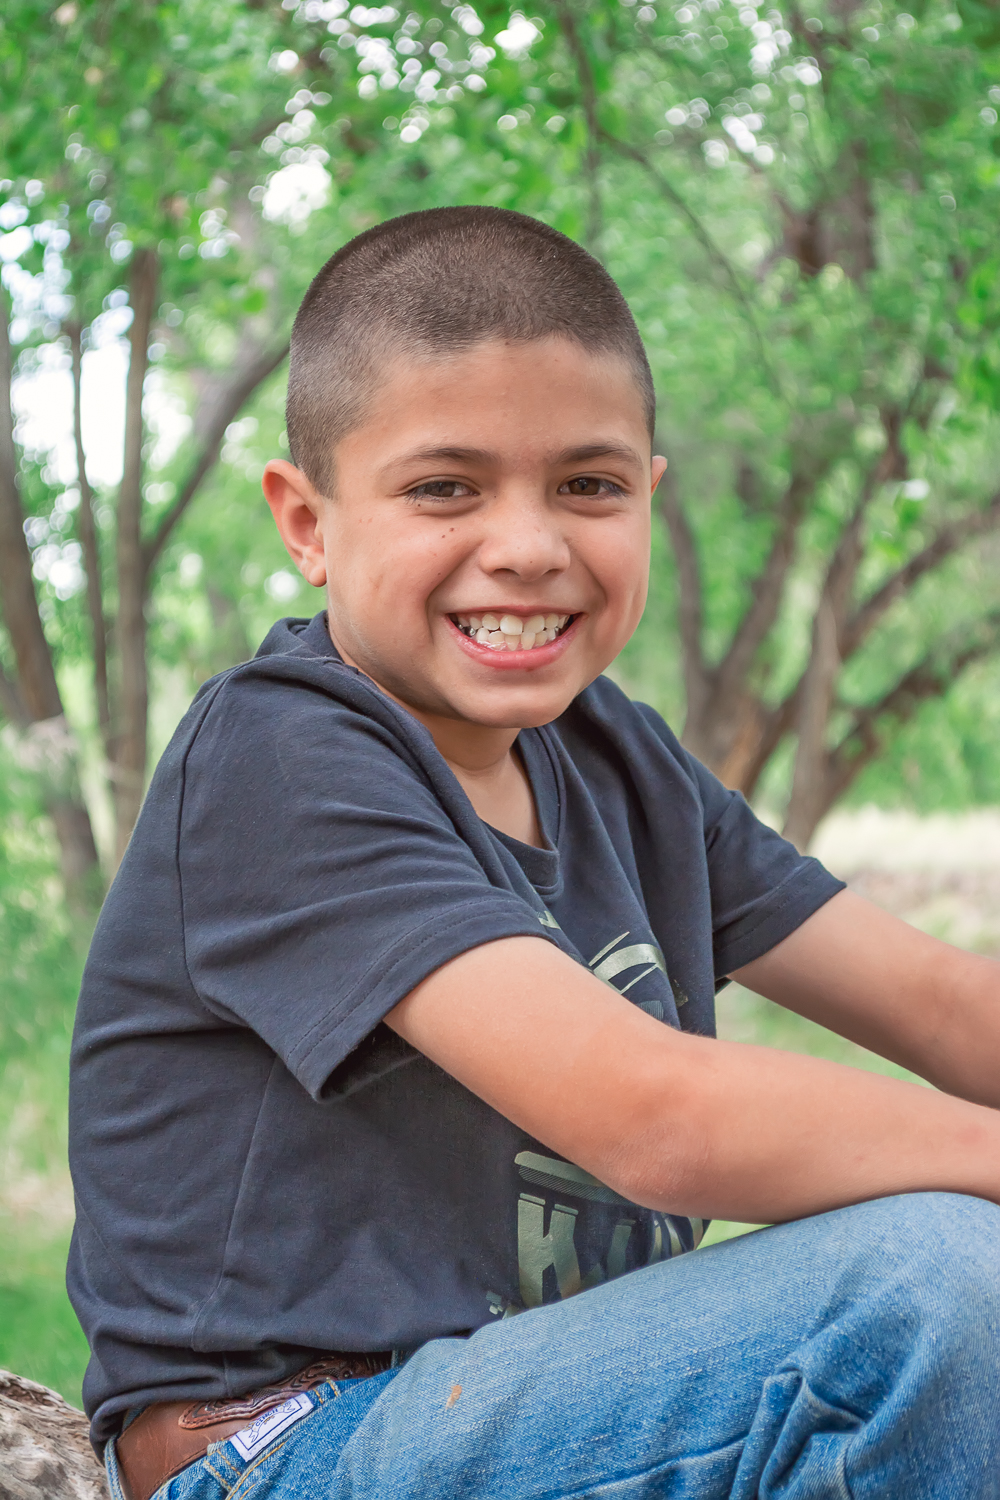 Childhood portrait, annual portrait, outdoor portrait, Los Lunas, New Mexico, Los Lunas River Park